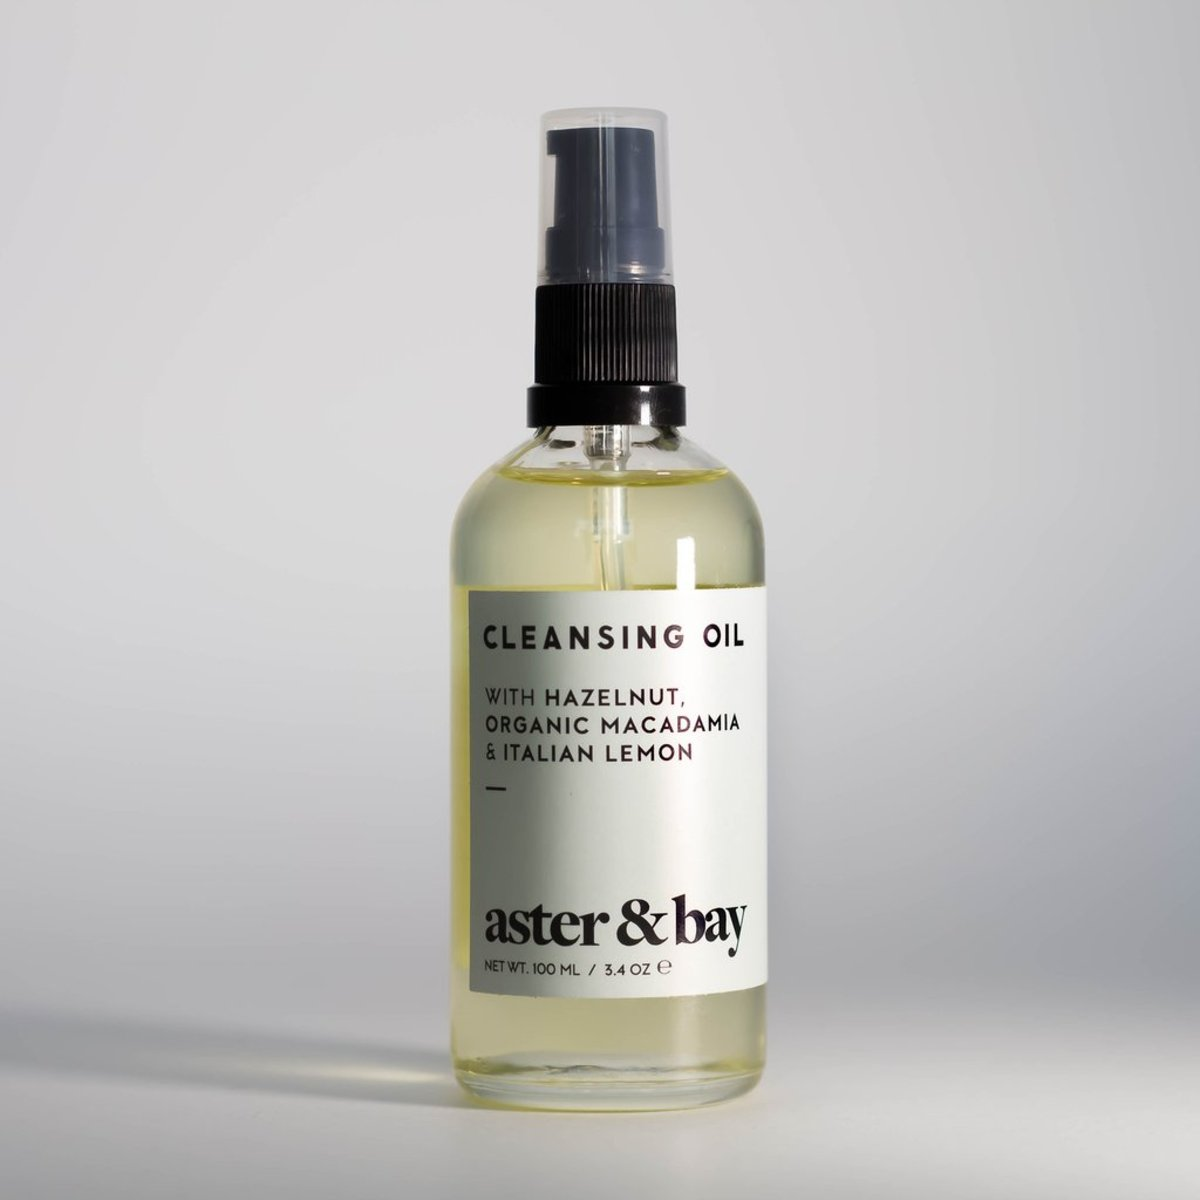 Aster & Bay Cleansing Oil